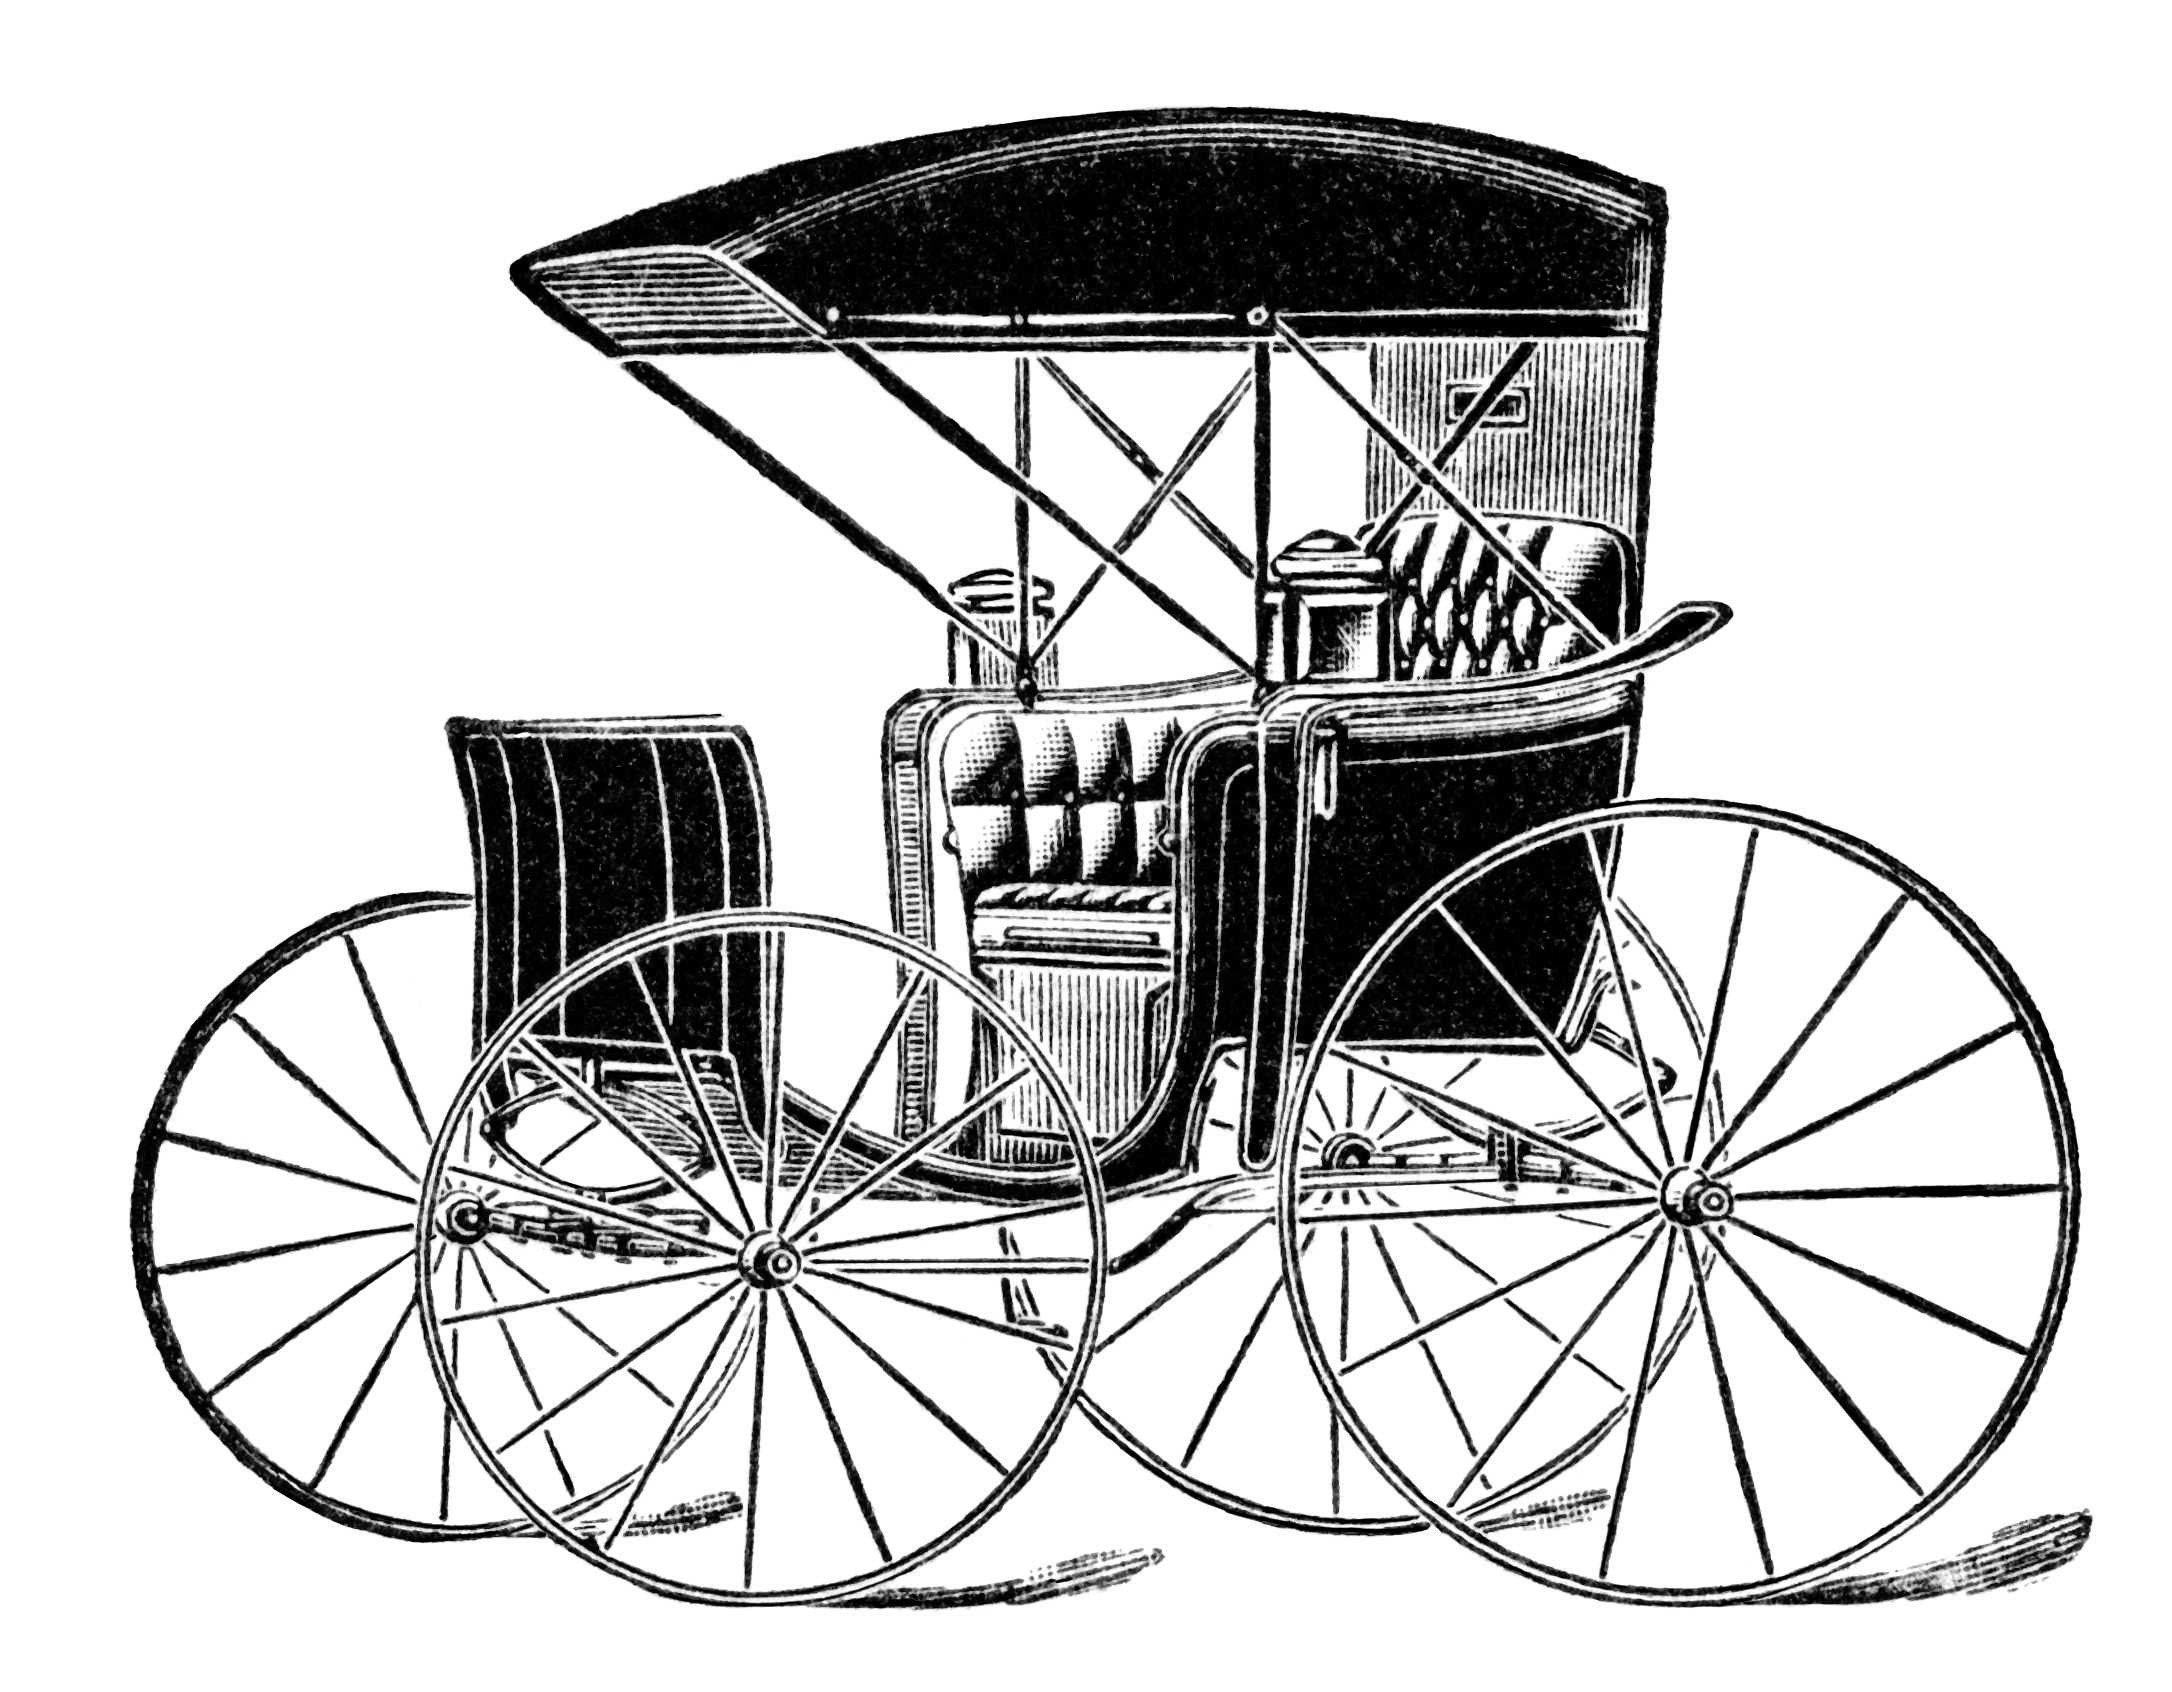 Horse drawn carriage ad. Wagon clipart old transportation